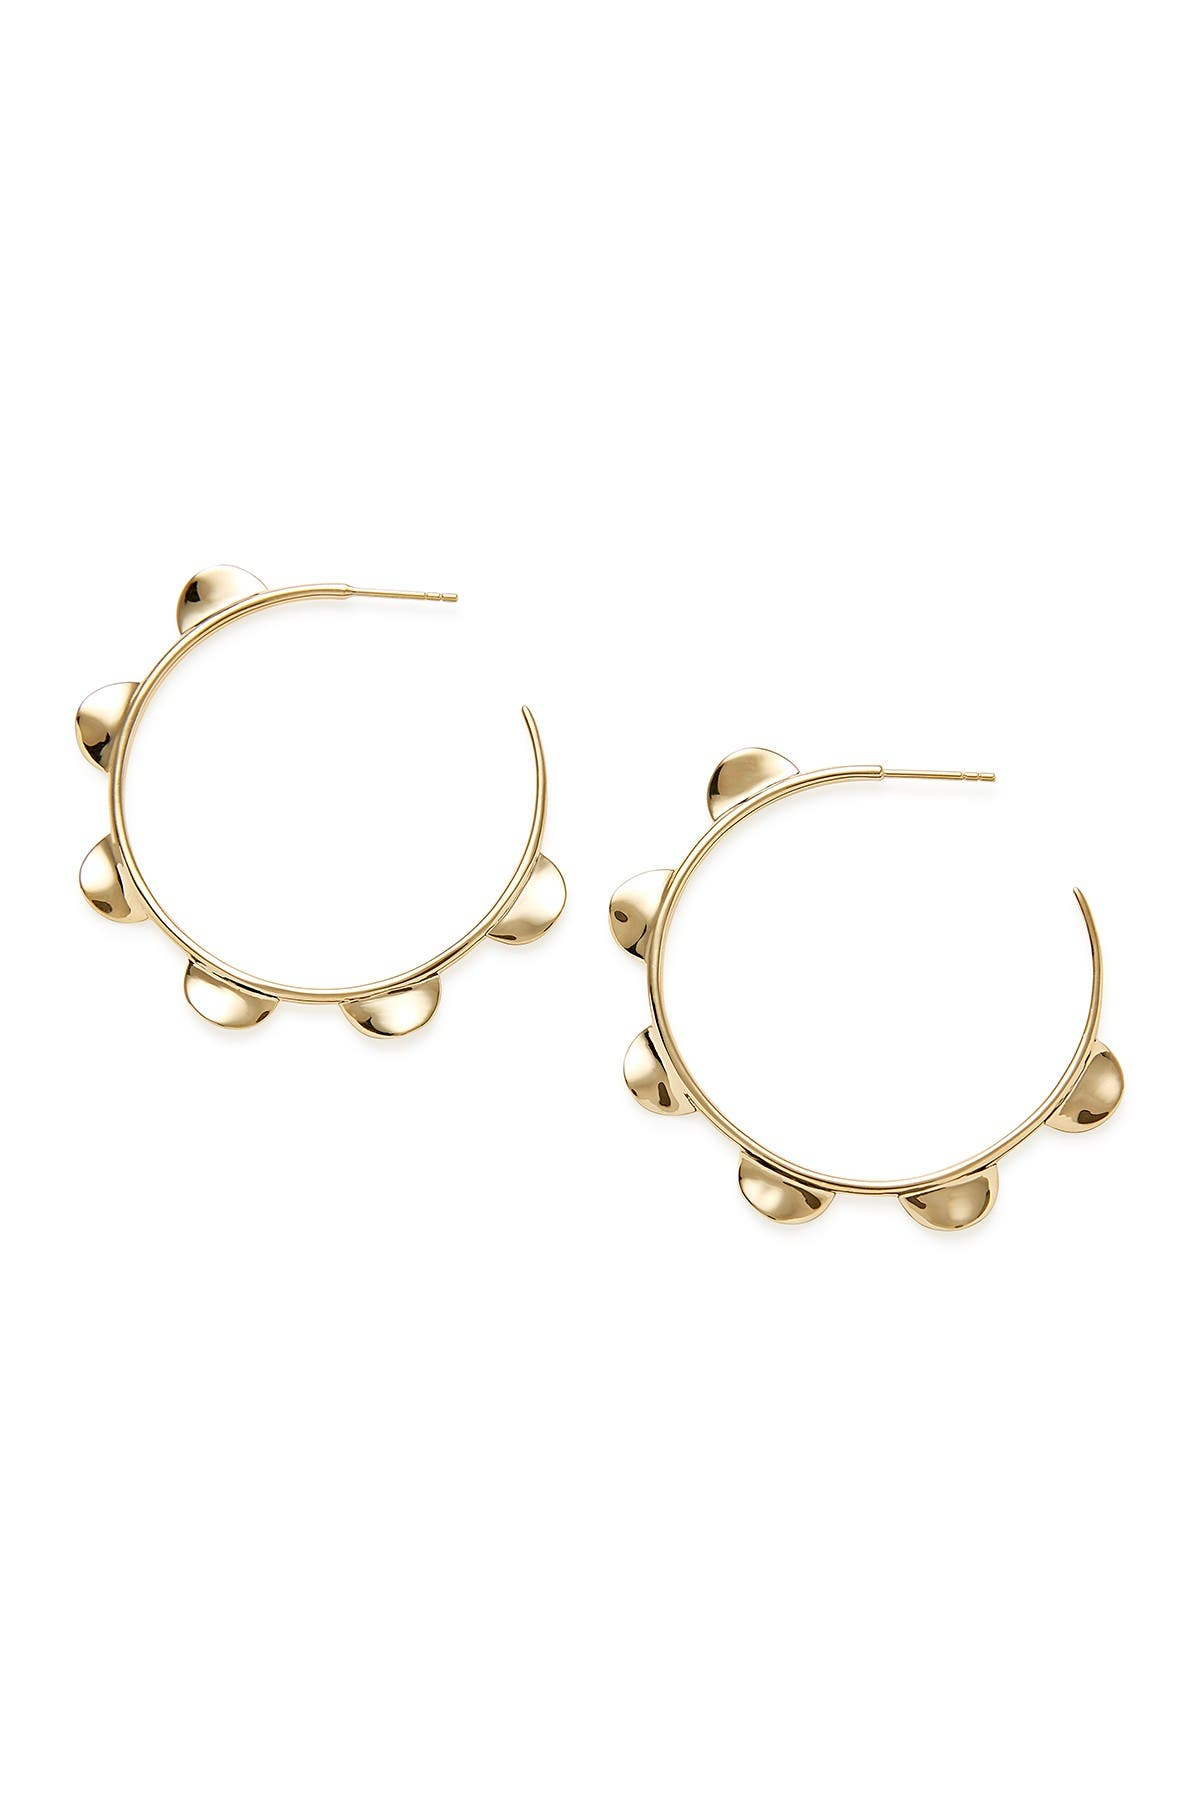 Image of Ippolita Classico 18K Yellow Gold Scalloped Spike Hoop Earrings